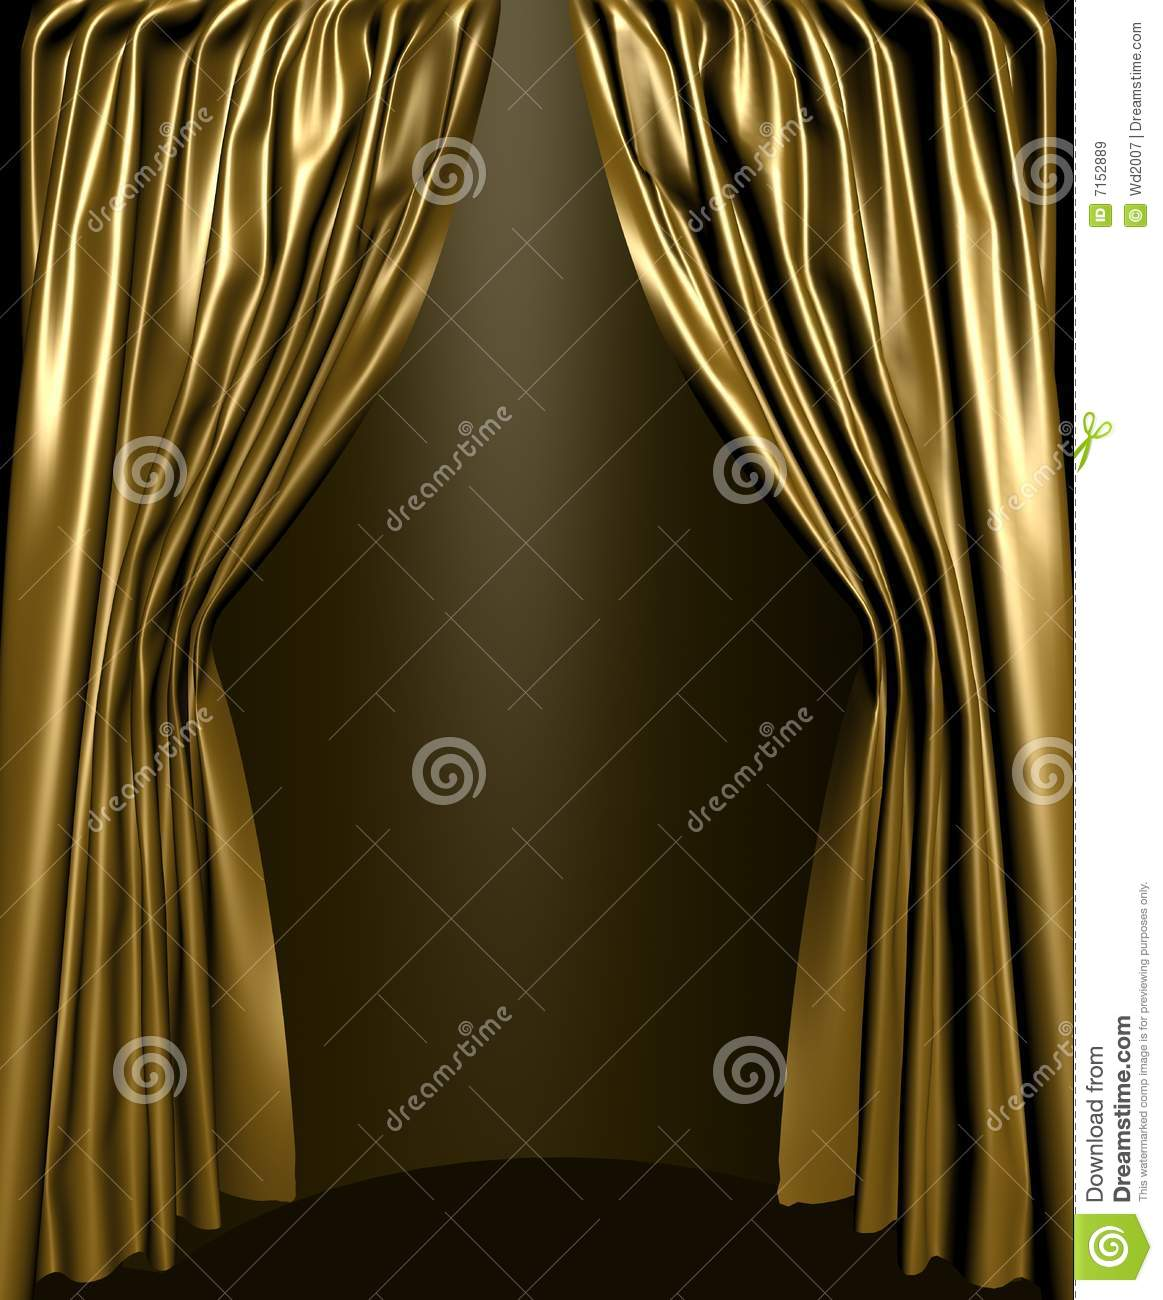 Open theater drapes or stage curtains royalty free stock image image - Royalty Free Stock Photo Curtain Open Silk Stage